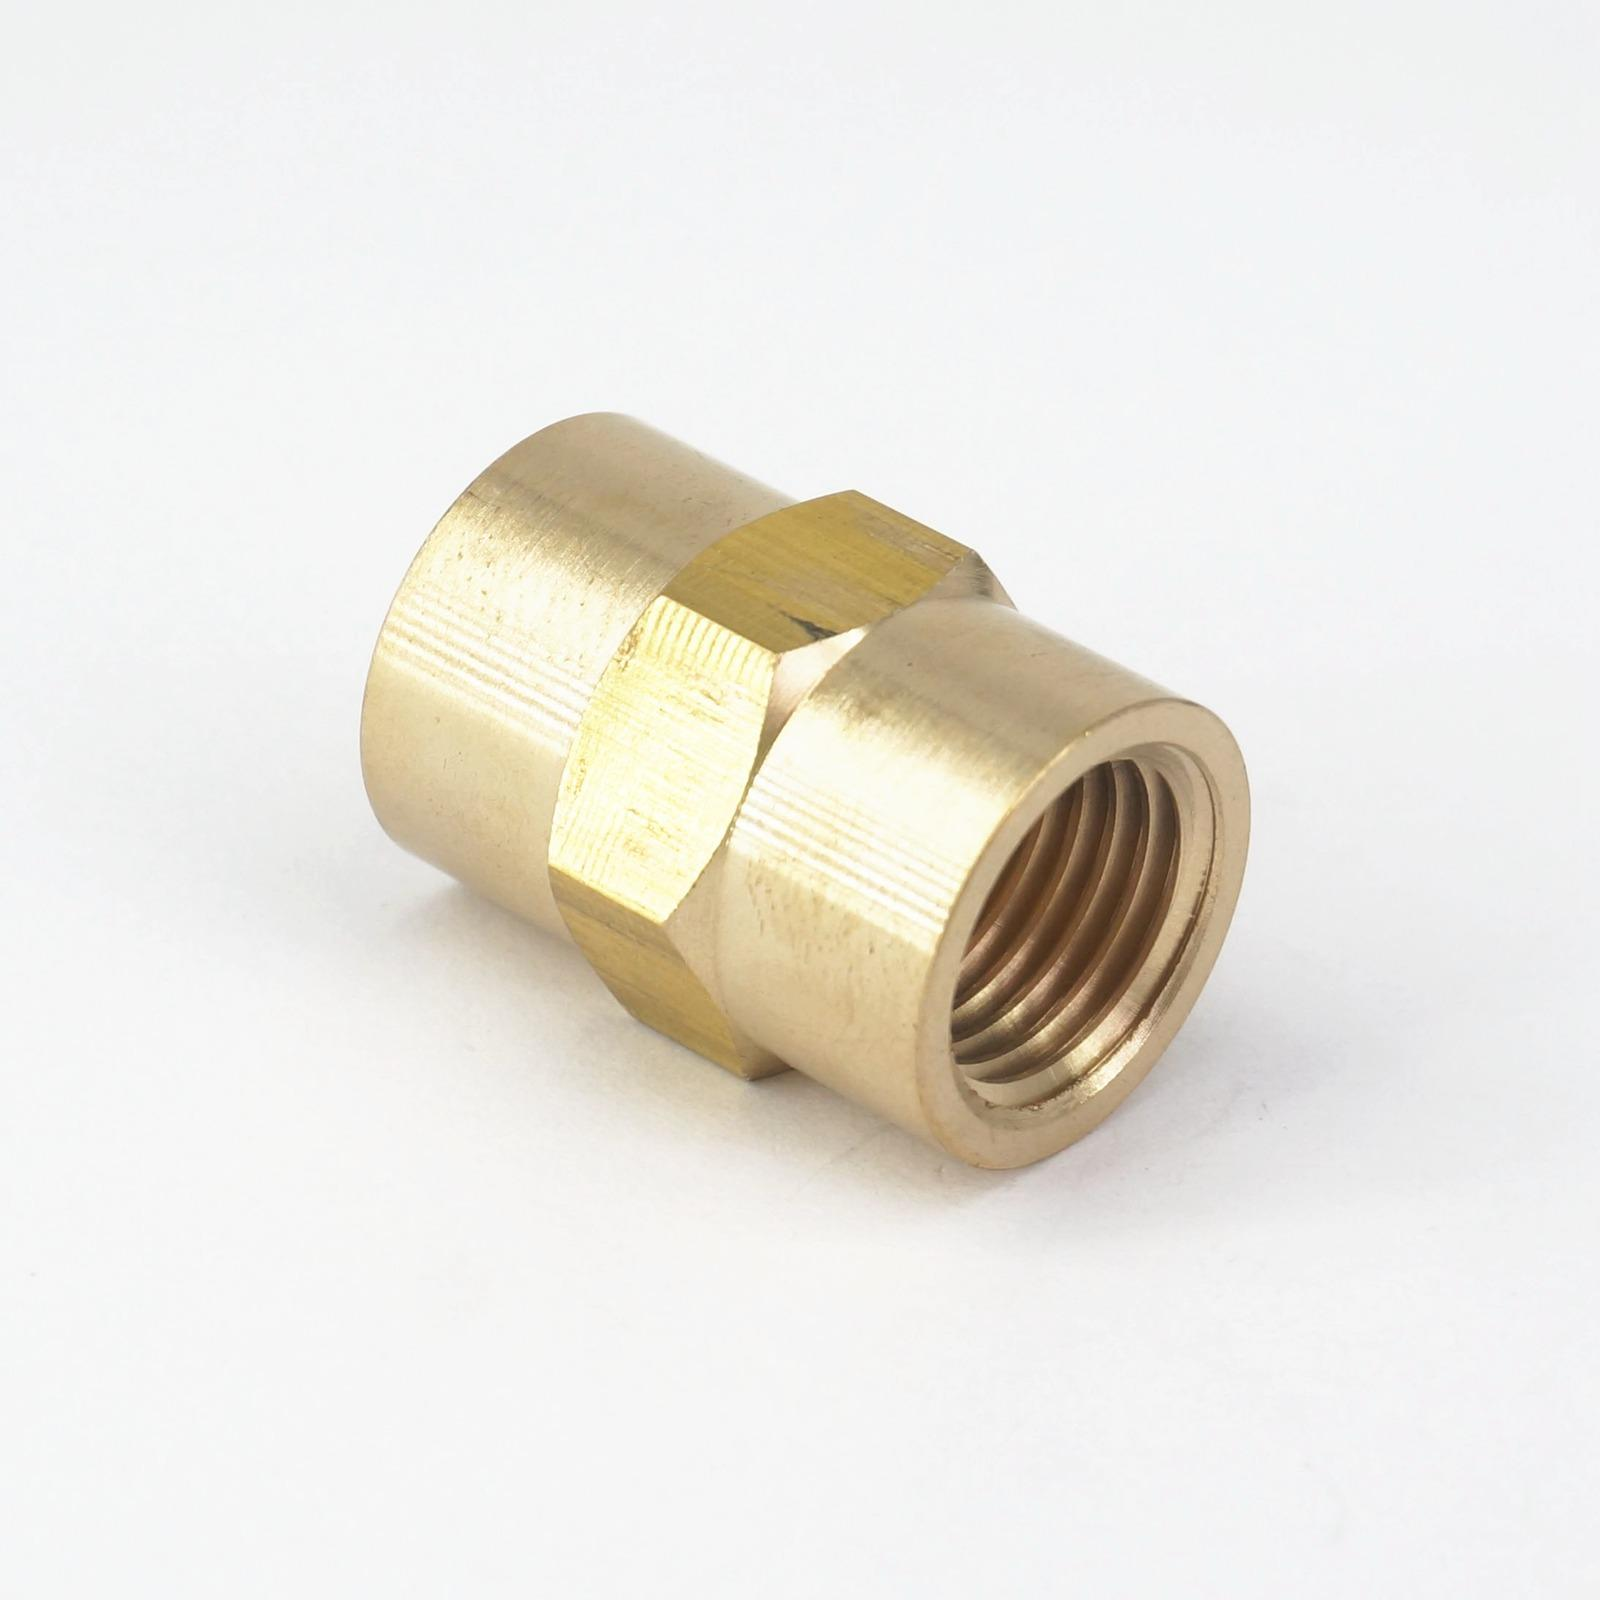 1# NPT Adapter,5pcs Brass Reducing Pipe Fitting NPT Adapter Oil Pipe Connector